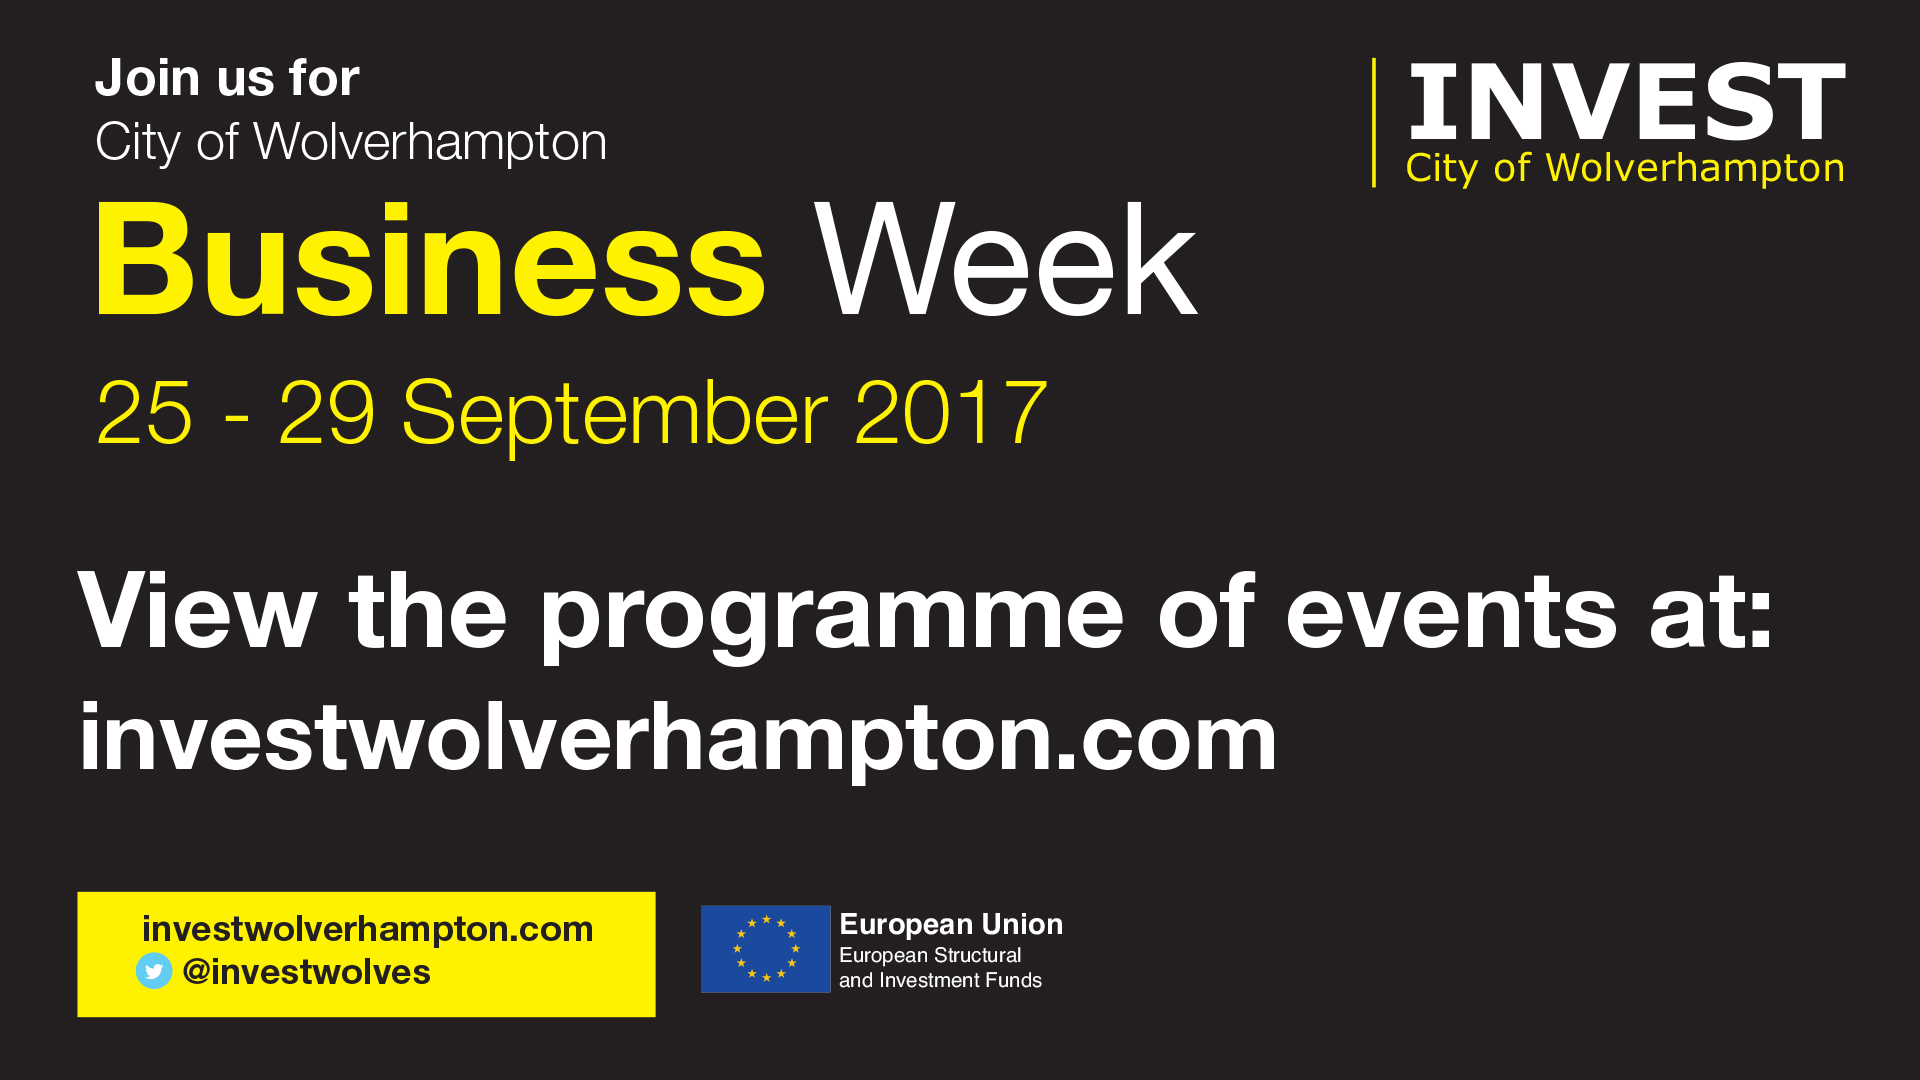 Join Us for City of Wolverhampton Business Week 25-29 September 2017